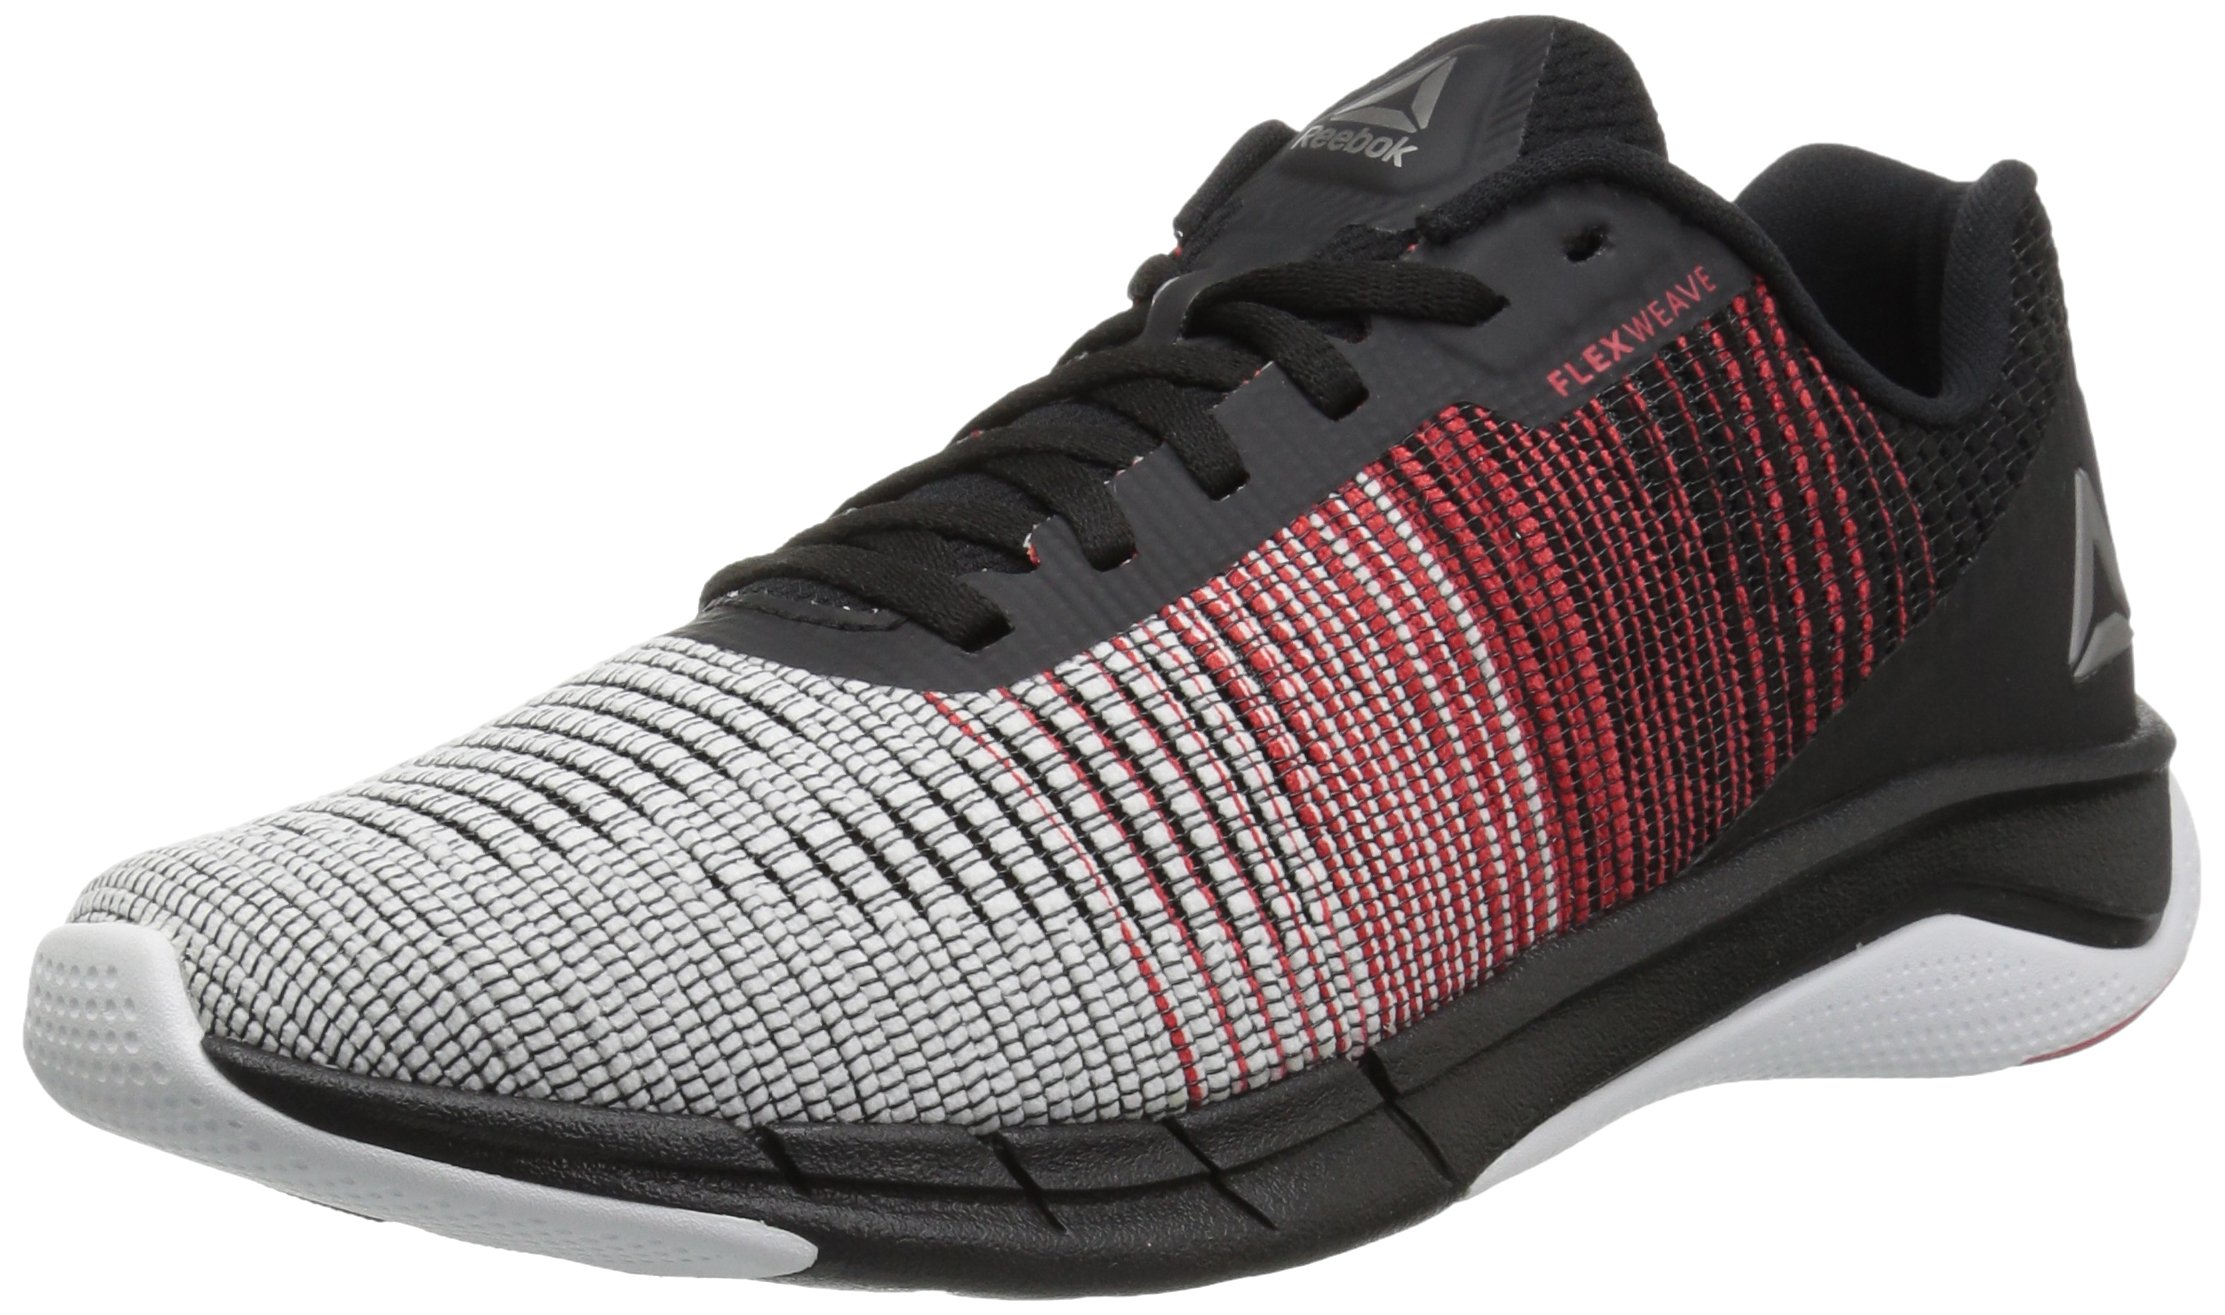 Reebok Men's Fast Flexweave Running Shoe, White/Primal Red/Black, 10.5 M US